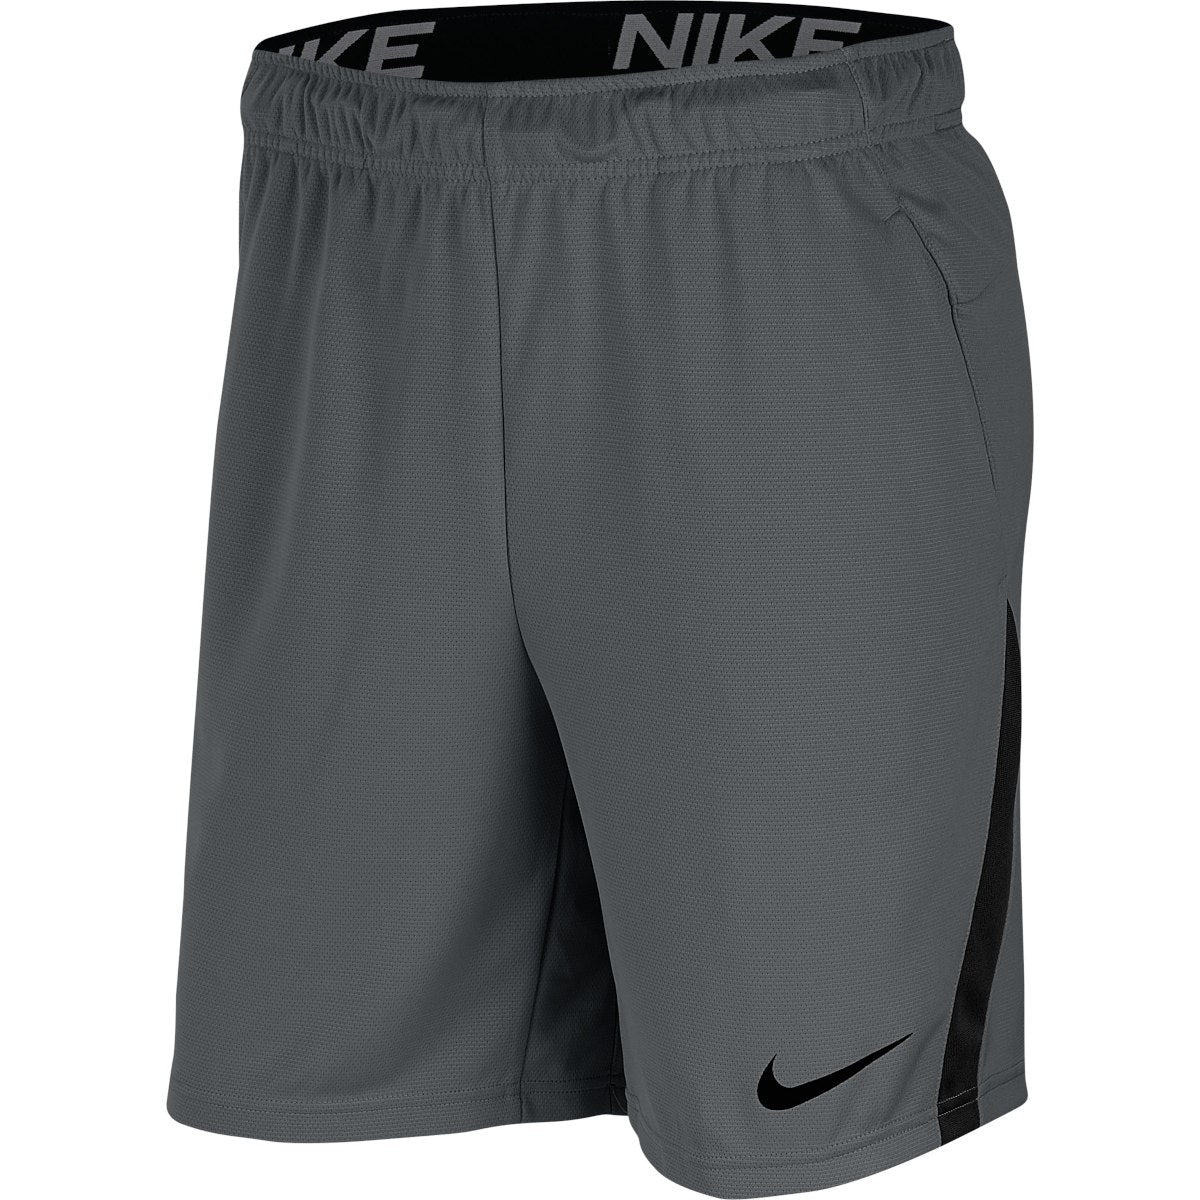 Nike Dri-Fit Short 5.0 - Men's